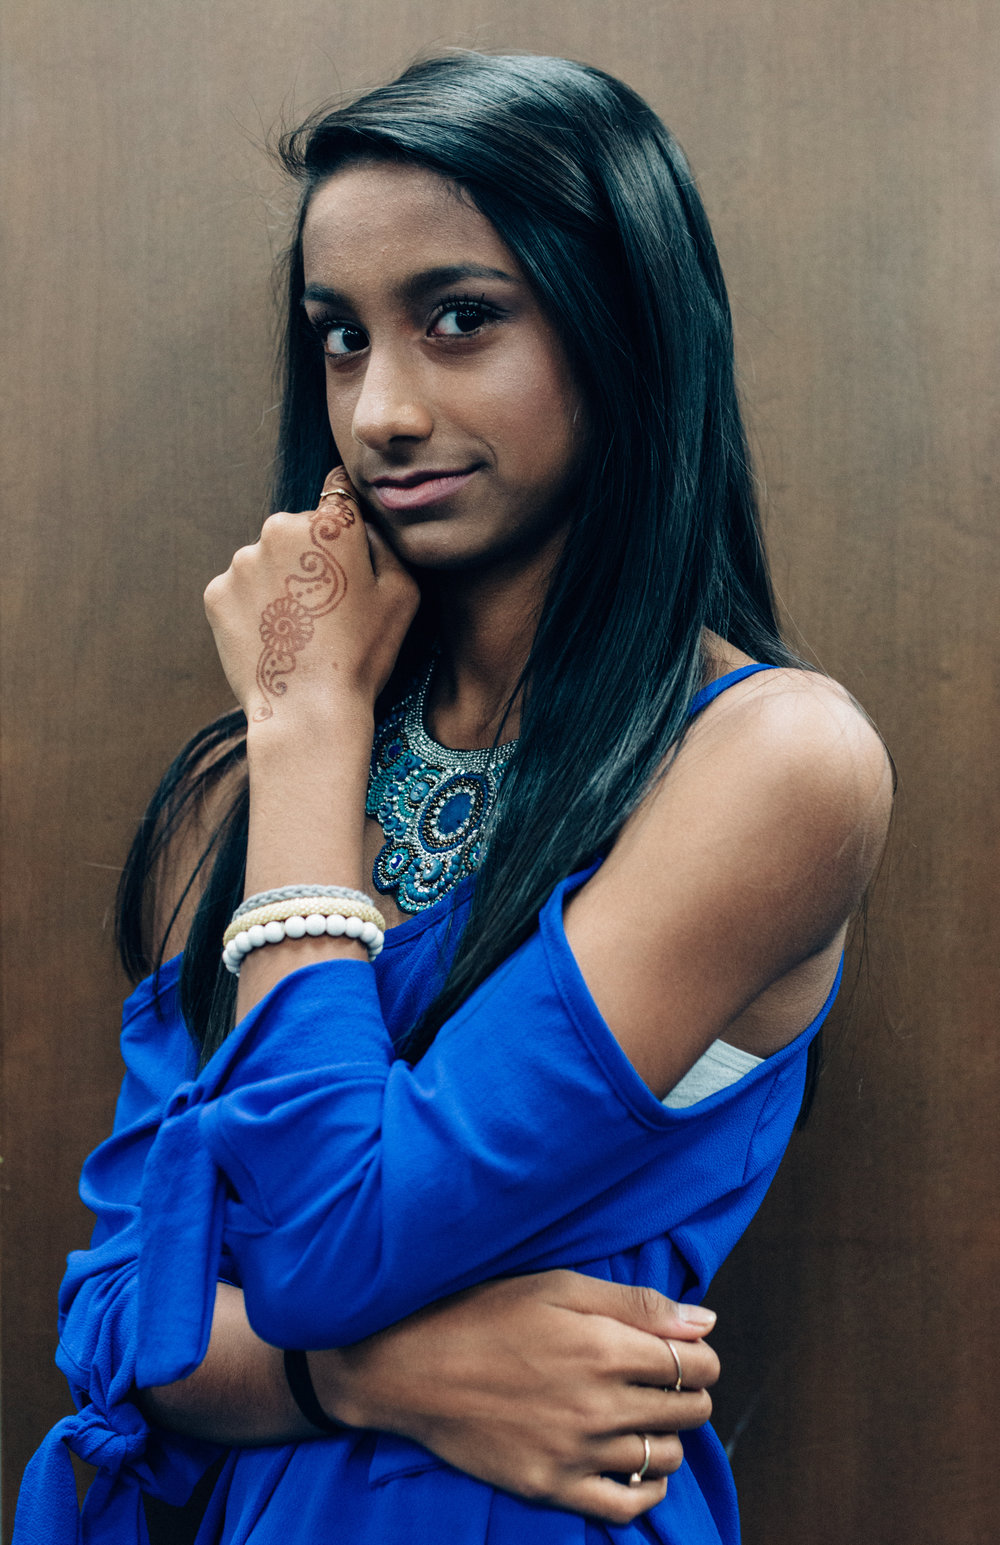 Mira Patel (A'gaci at Stones River Mall): A'gaci top, shorts, and necklace